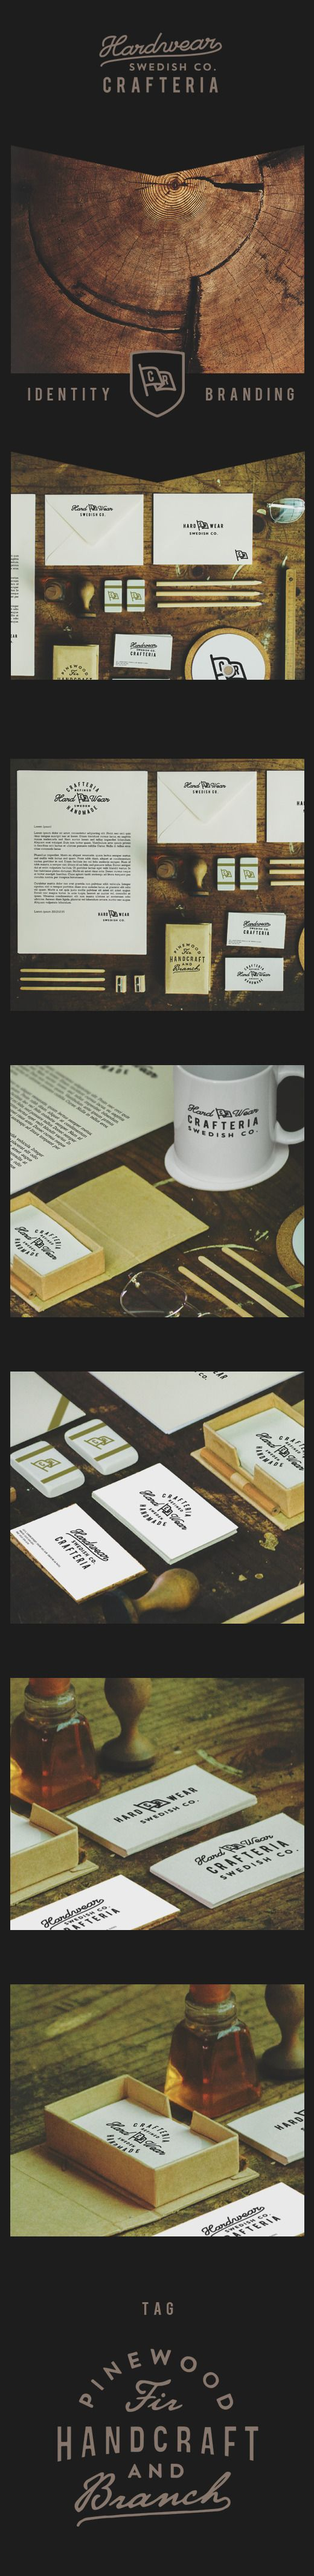 Hardwear Swedish Co. Crafteria branding | Authentic China Identity by Yohanes Raymond